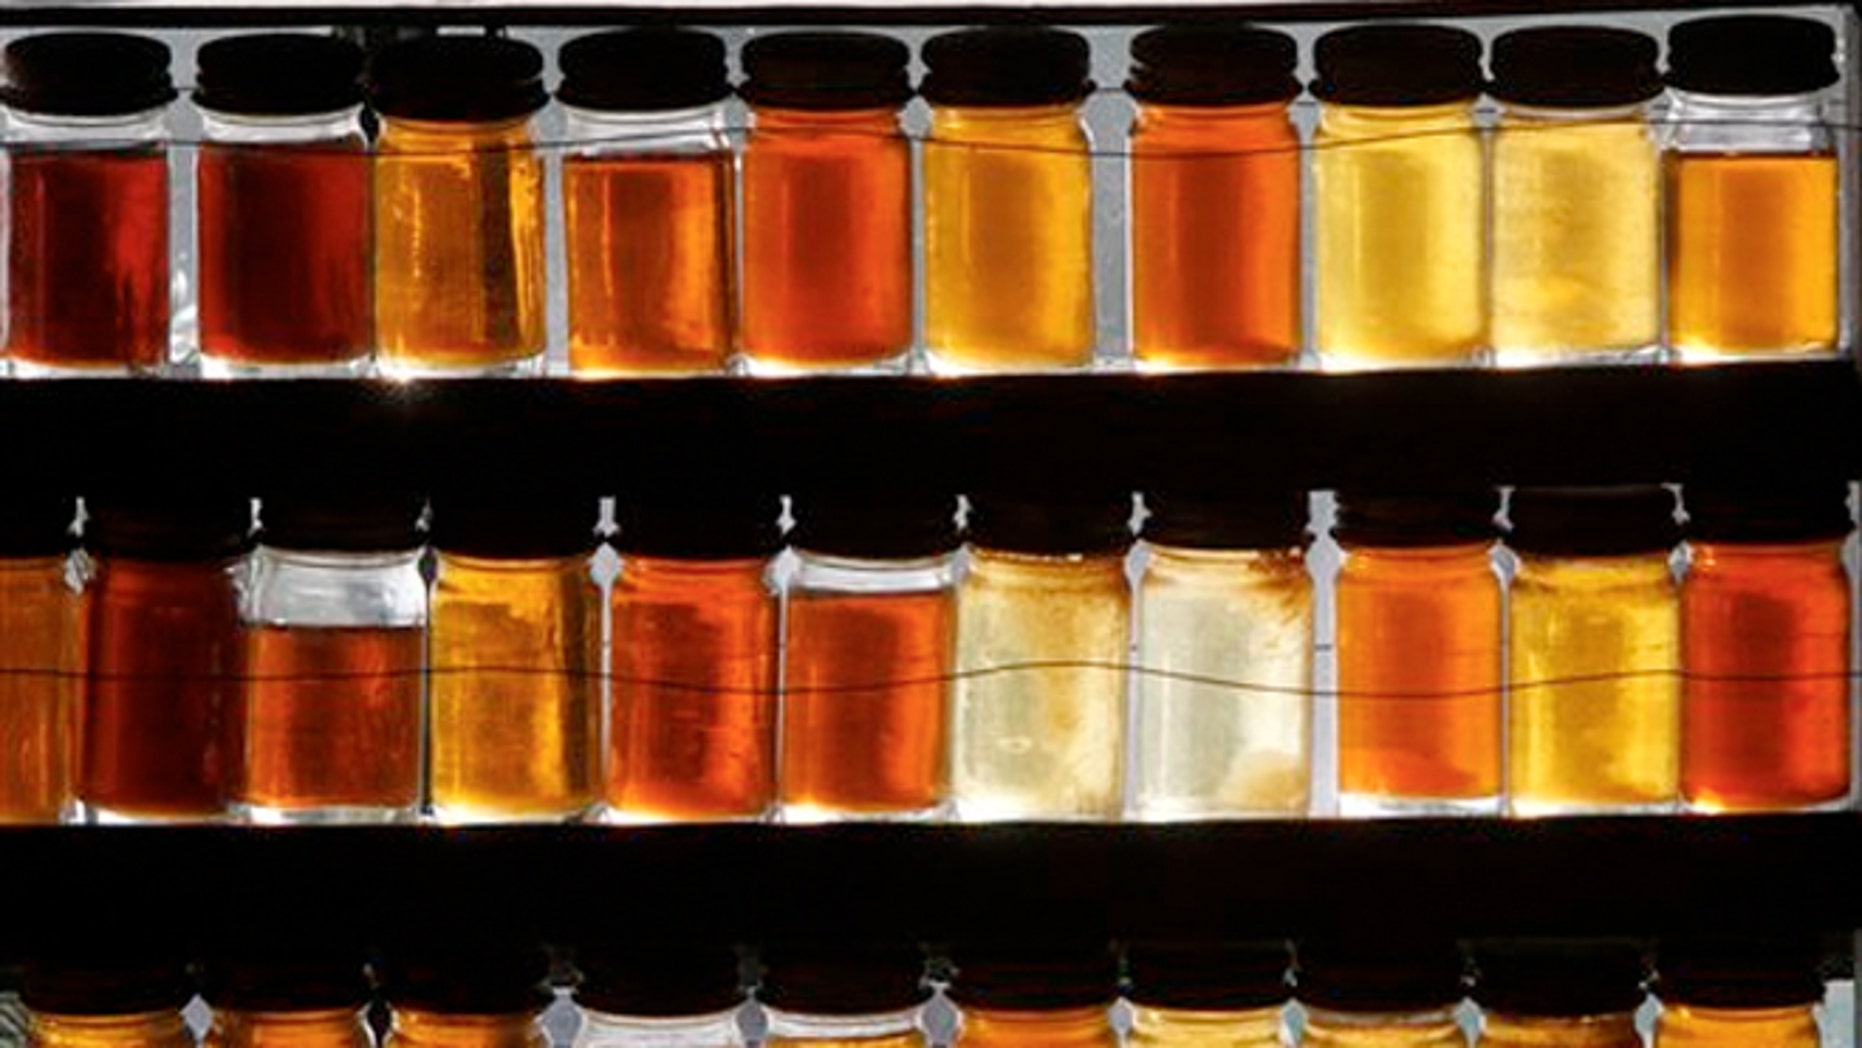 Eighteen different grades of maple syrup are displayed in East Montpelier, Vt. as the state's lawmakers are considering whether to drop the state's traditional maple labeling system in favor of an international one.